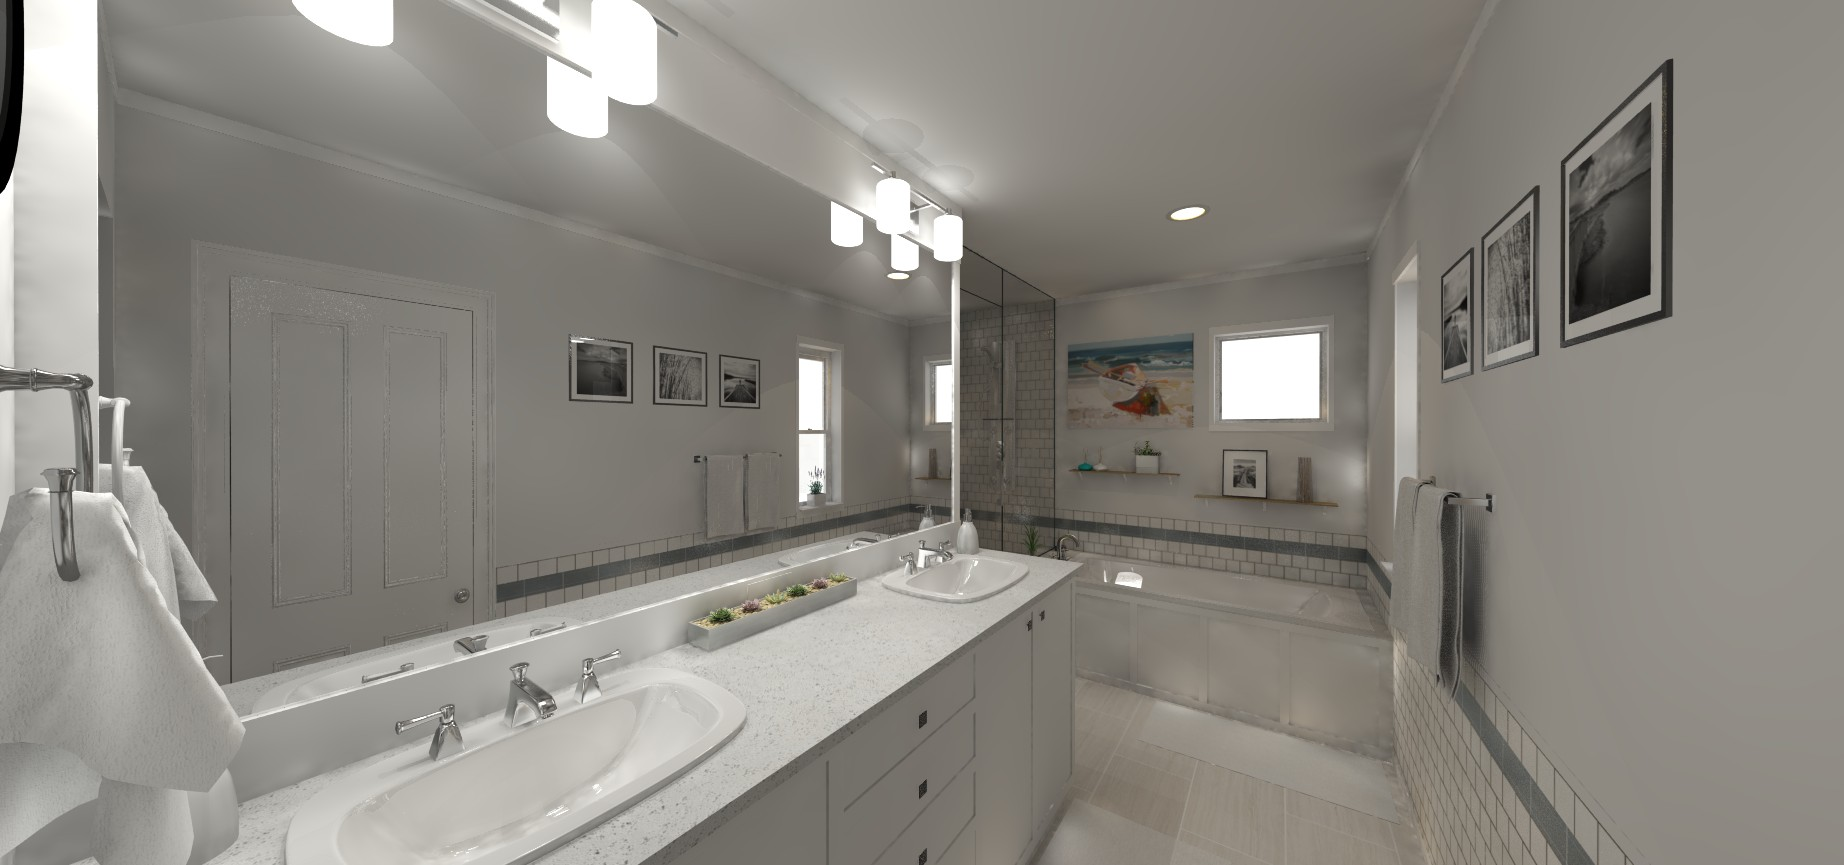 Master Bathroom 2017-04-21 09412100000.jpg